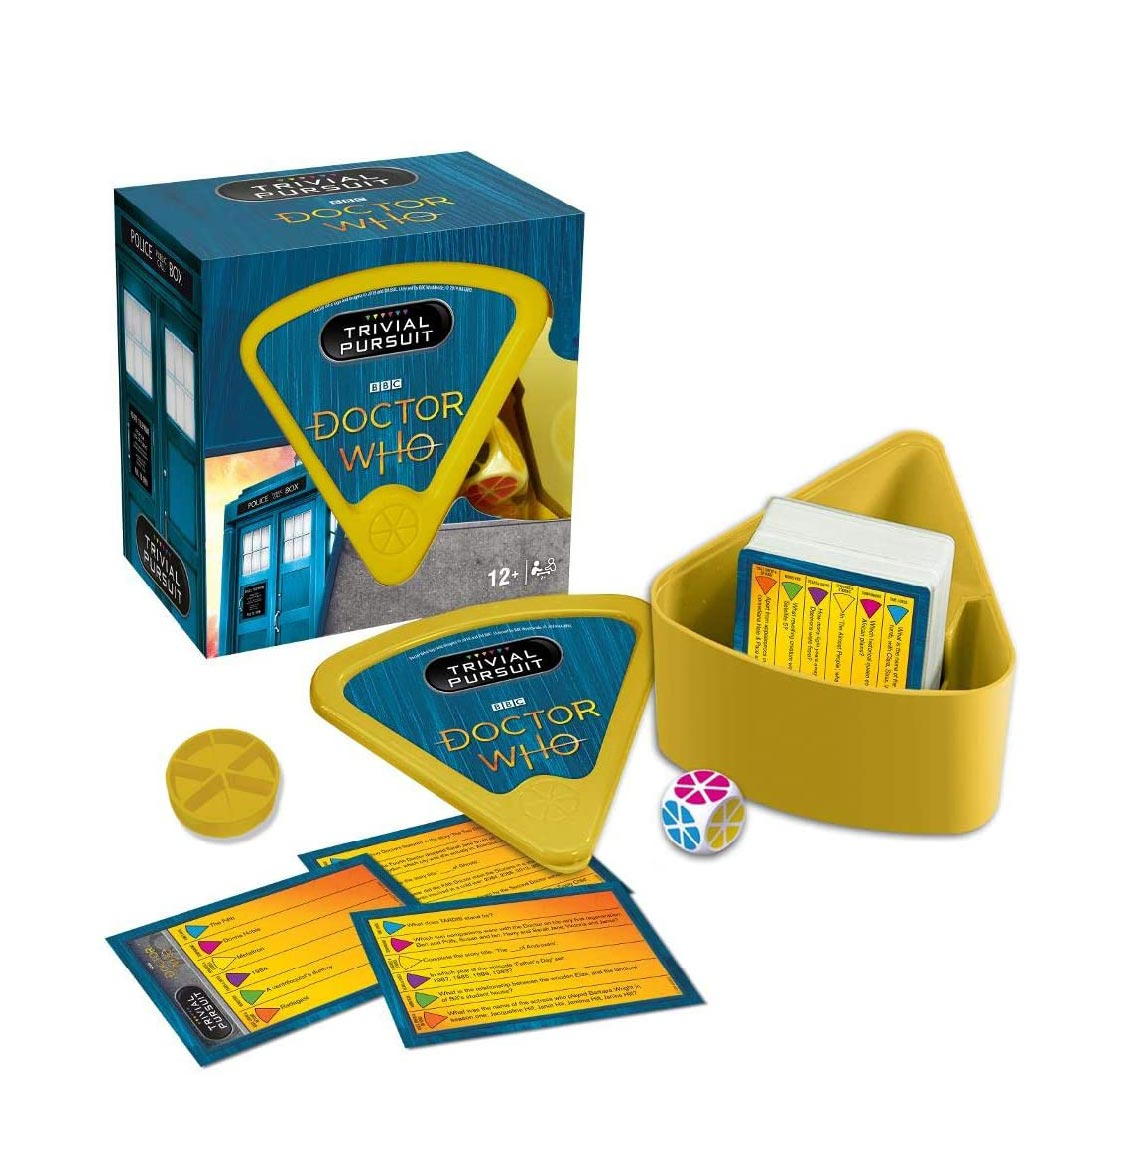 Trivial Pursuit Dr. Who Bitesize Winning Moves English Edition